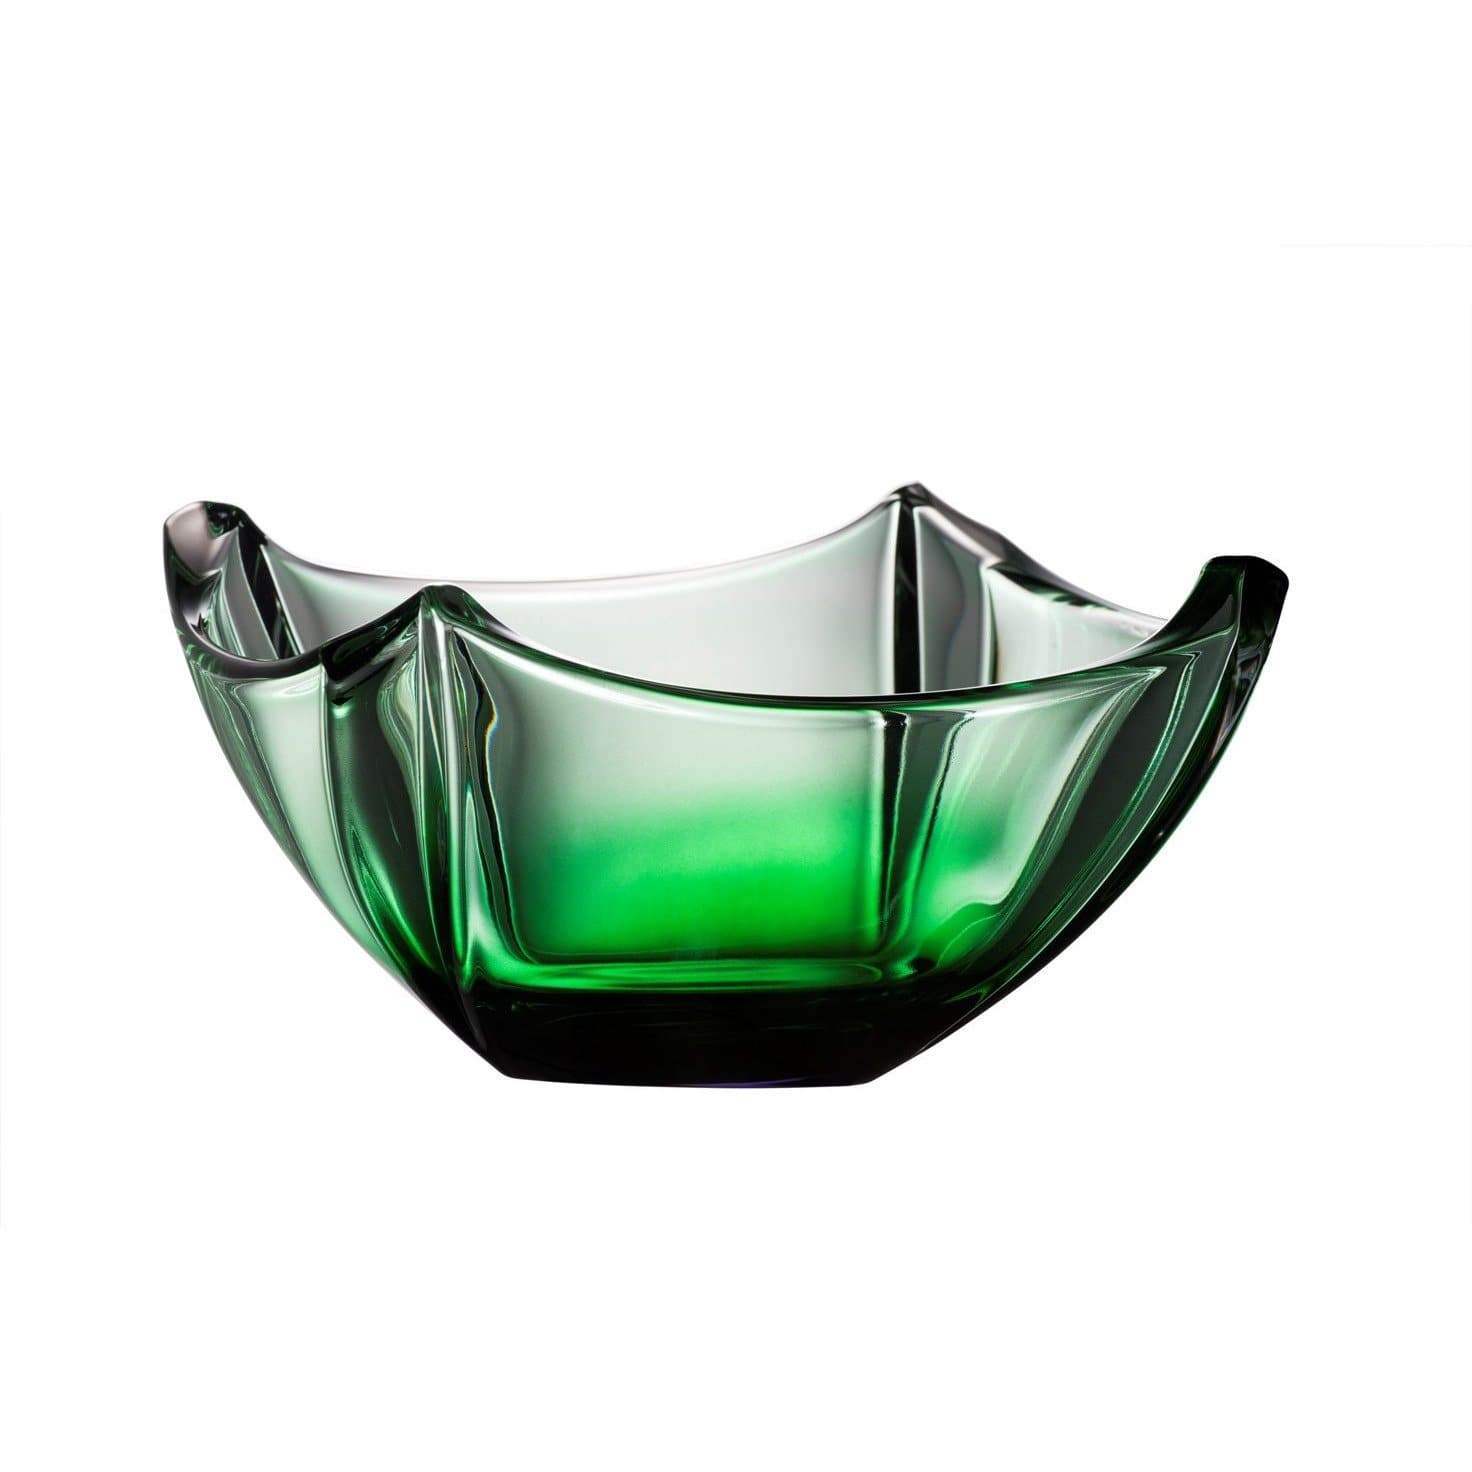 "Emerald Dune 10"" Bowl G45023 - Galway Irish Crystal"